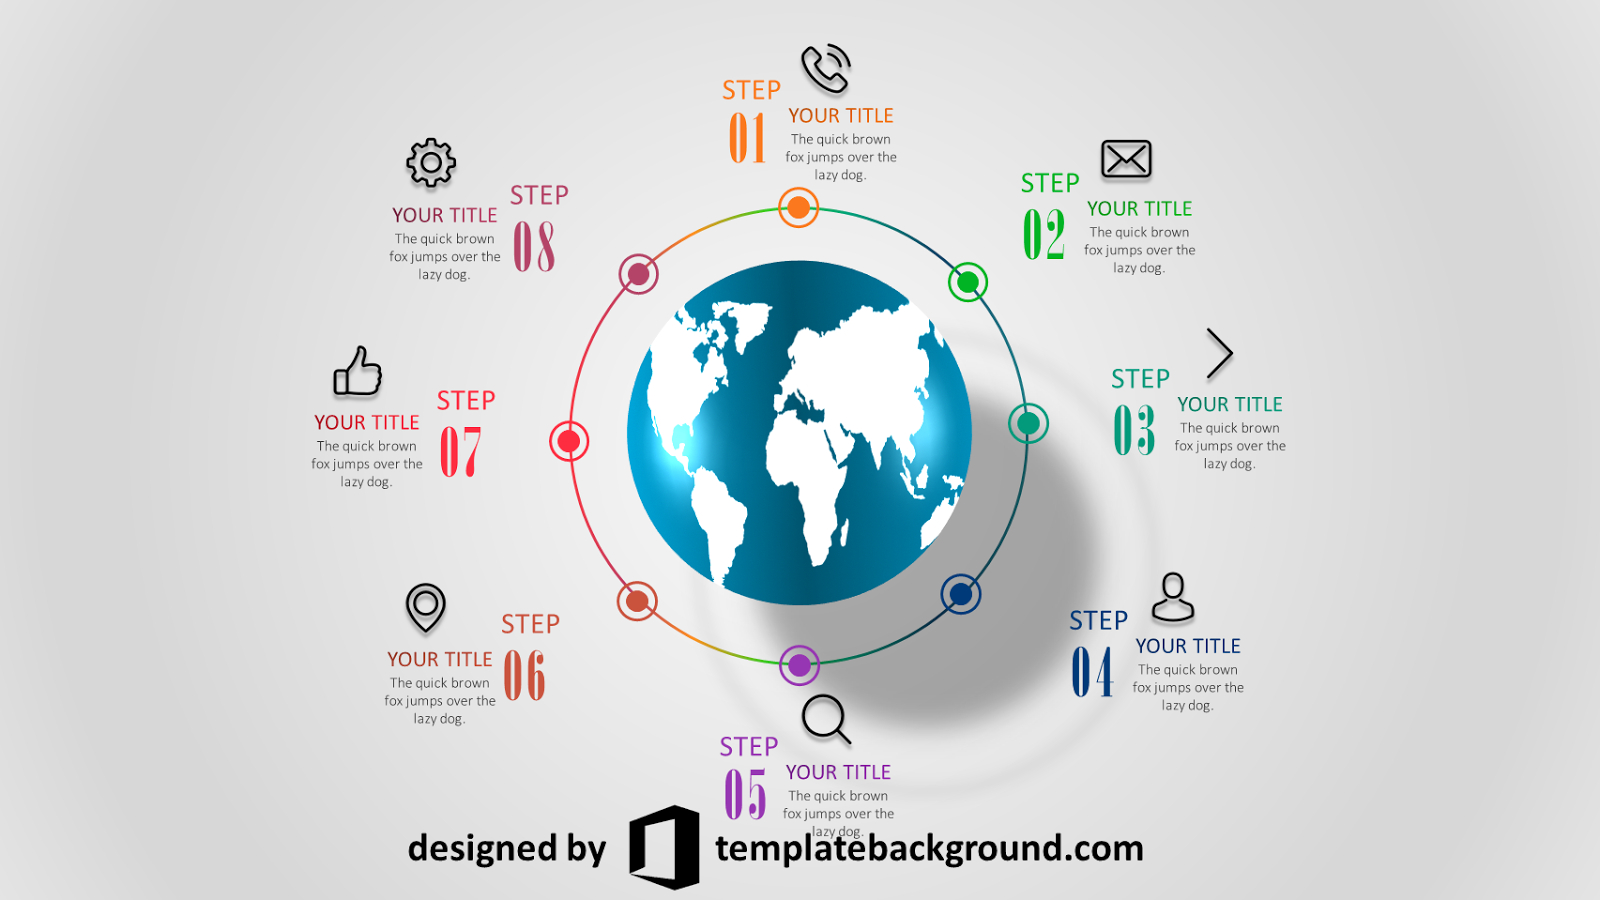 010 Animated Ppt Templates Free Downloads Png For Download Within Powerpoint Animation Templates Free Download